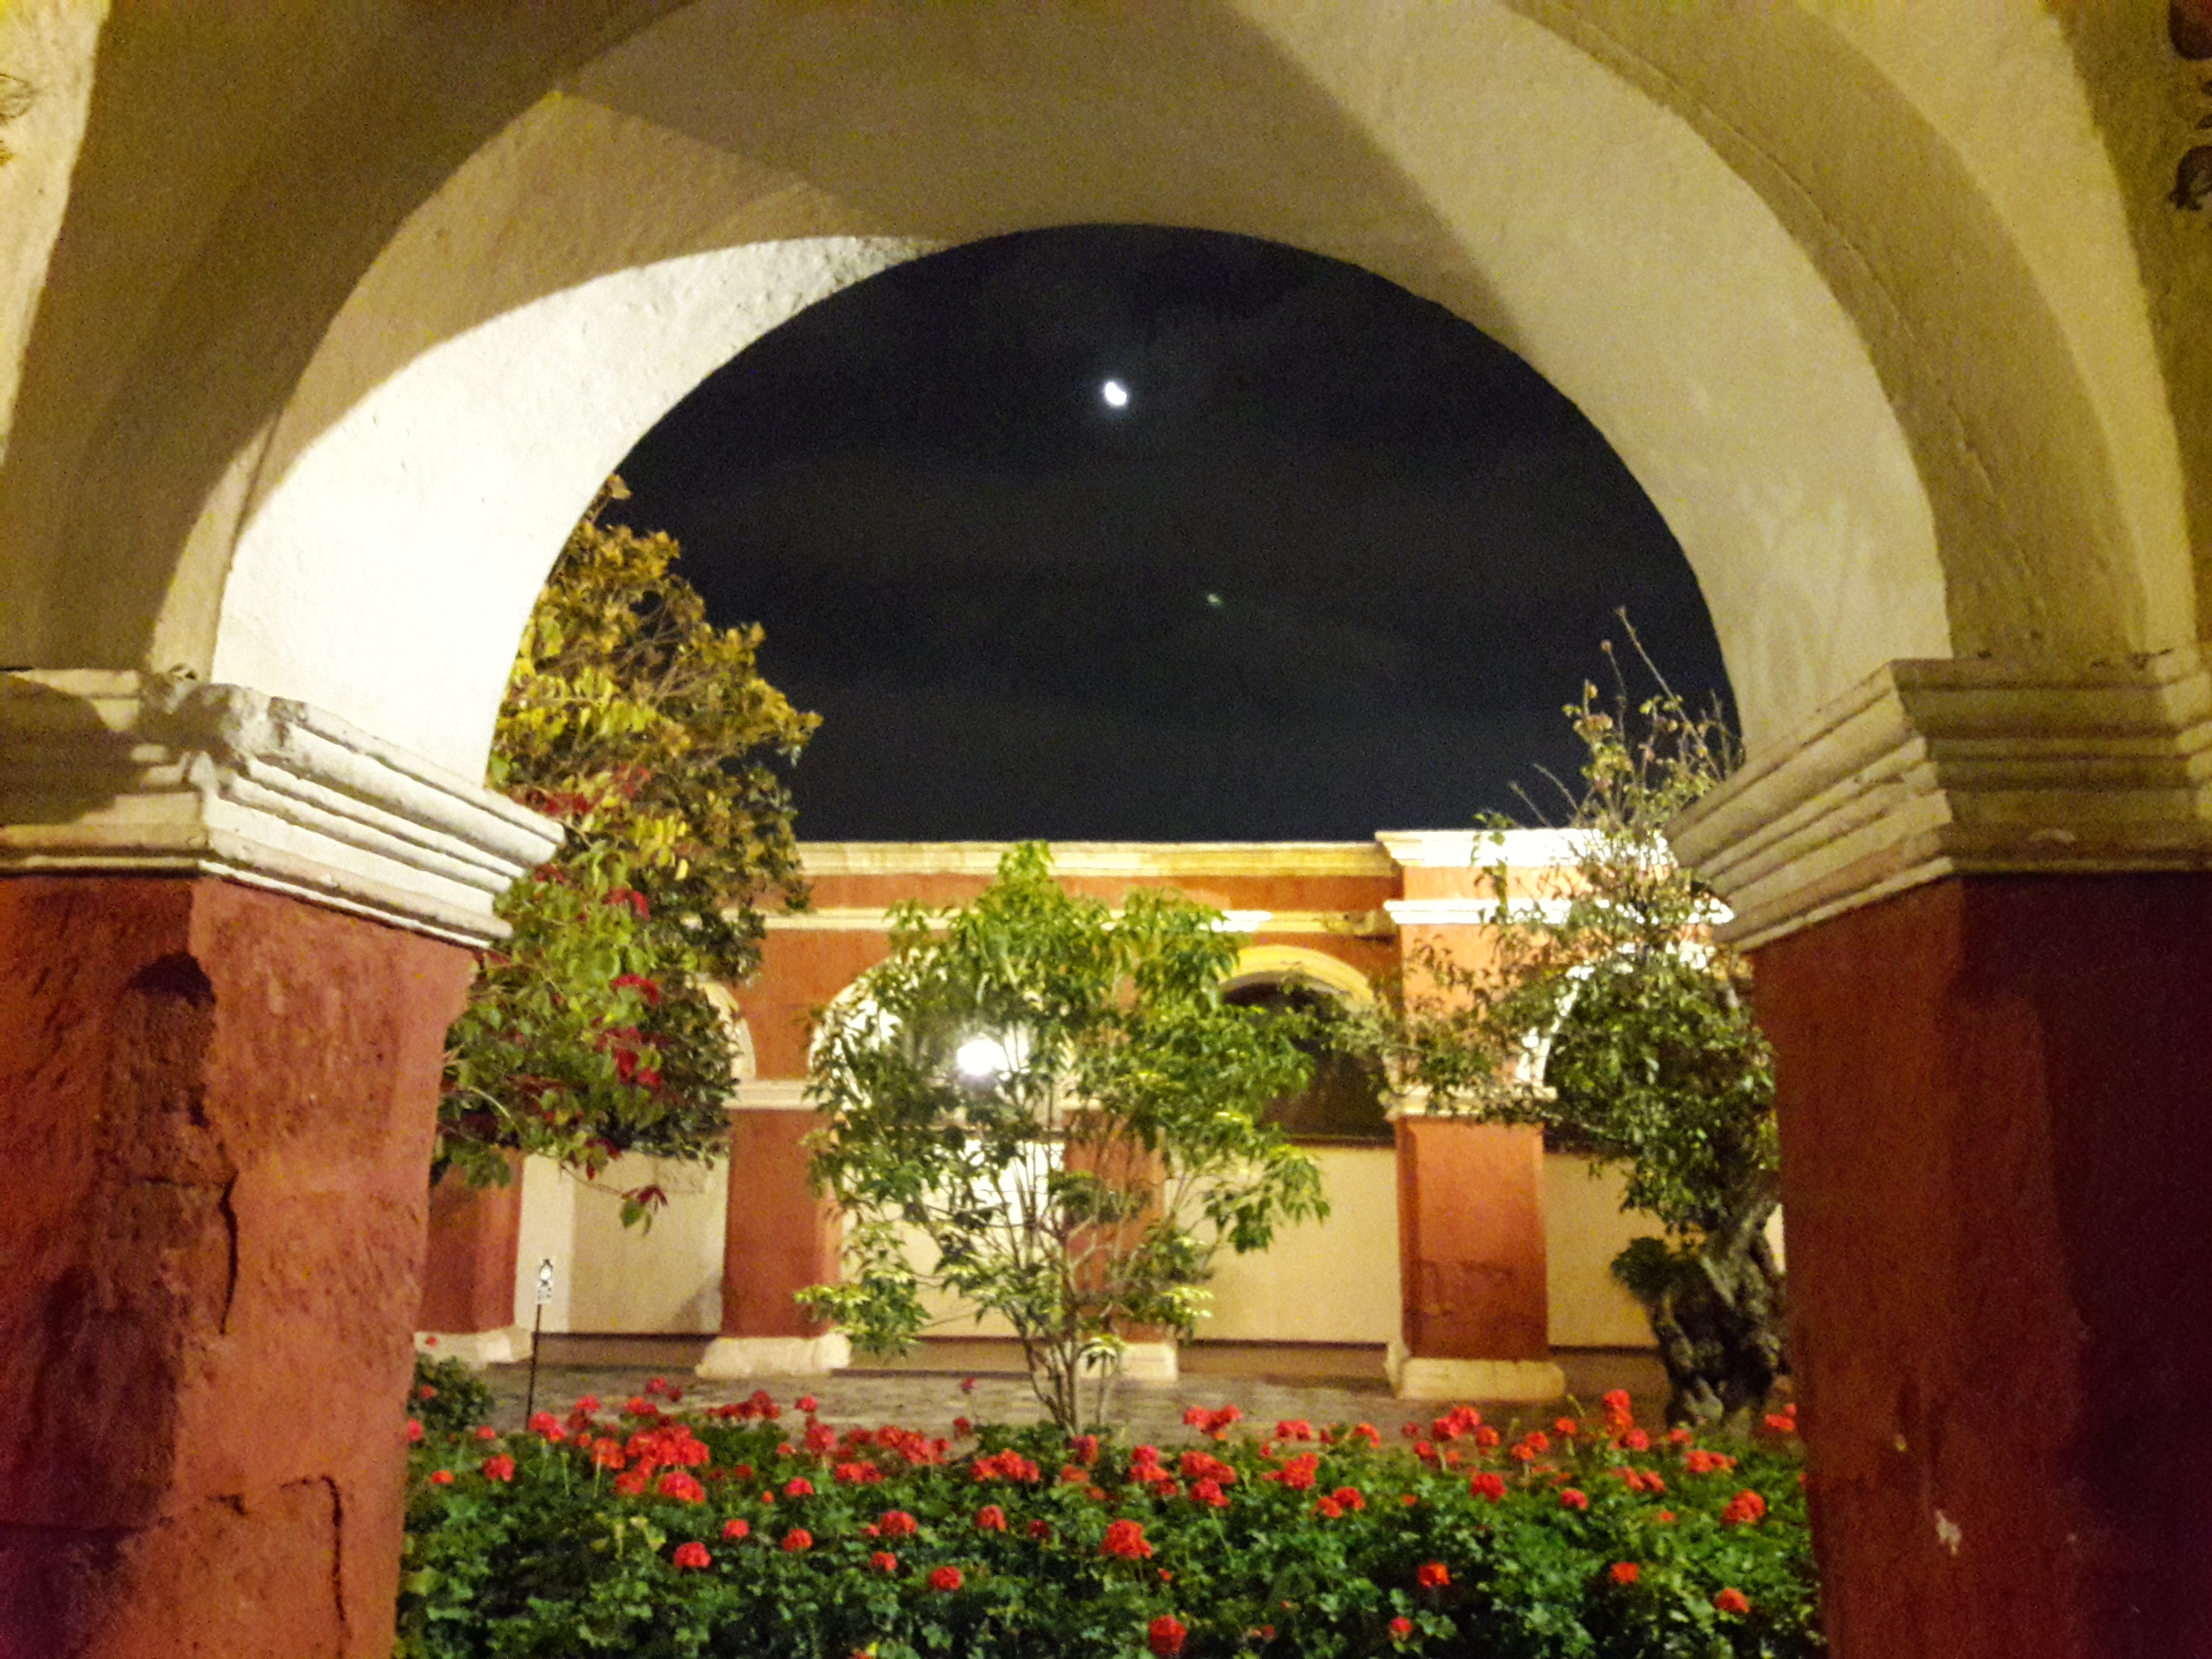 An arch with flowers and plants. The moon and stars in the sky.